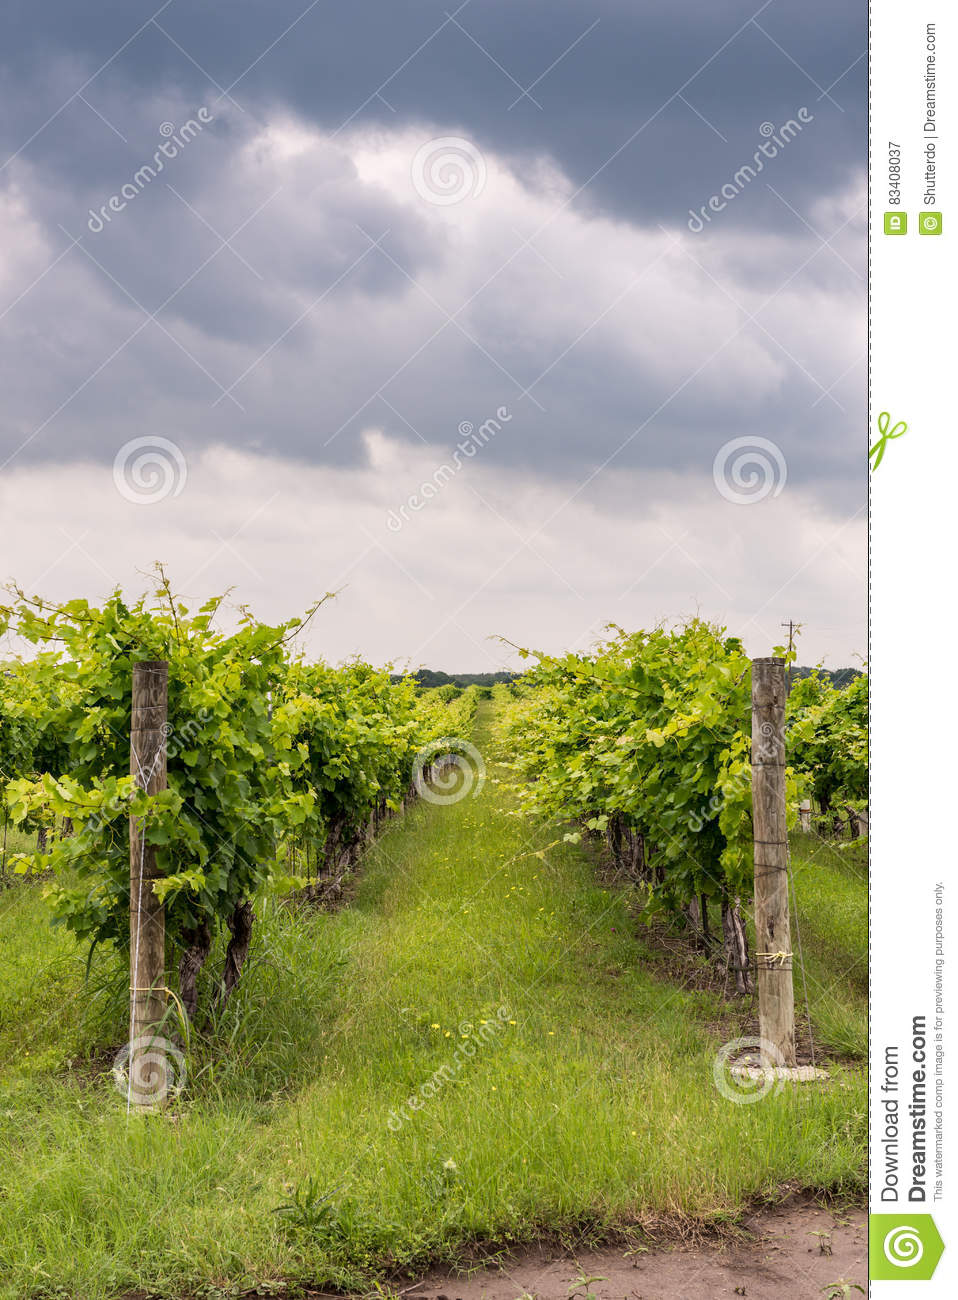 Rows of grapevines in Texas Hill Country